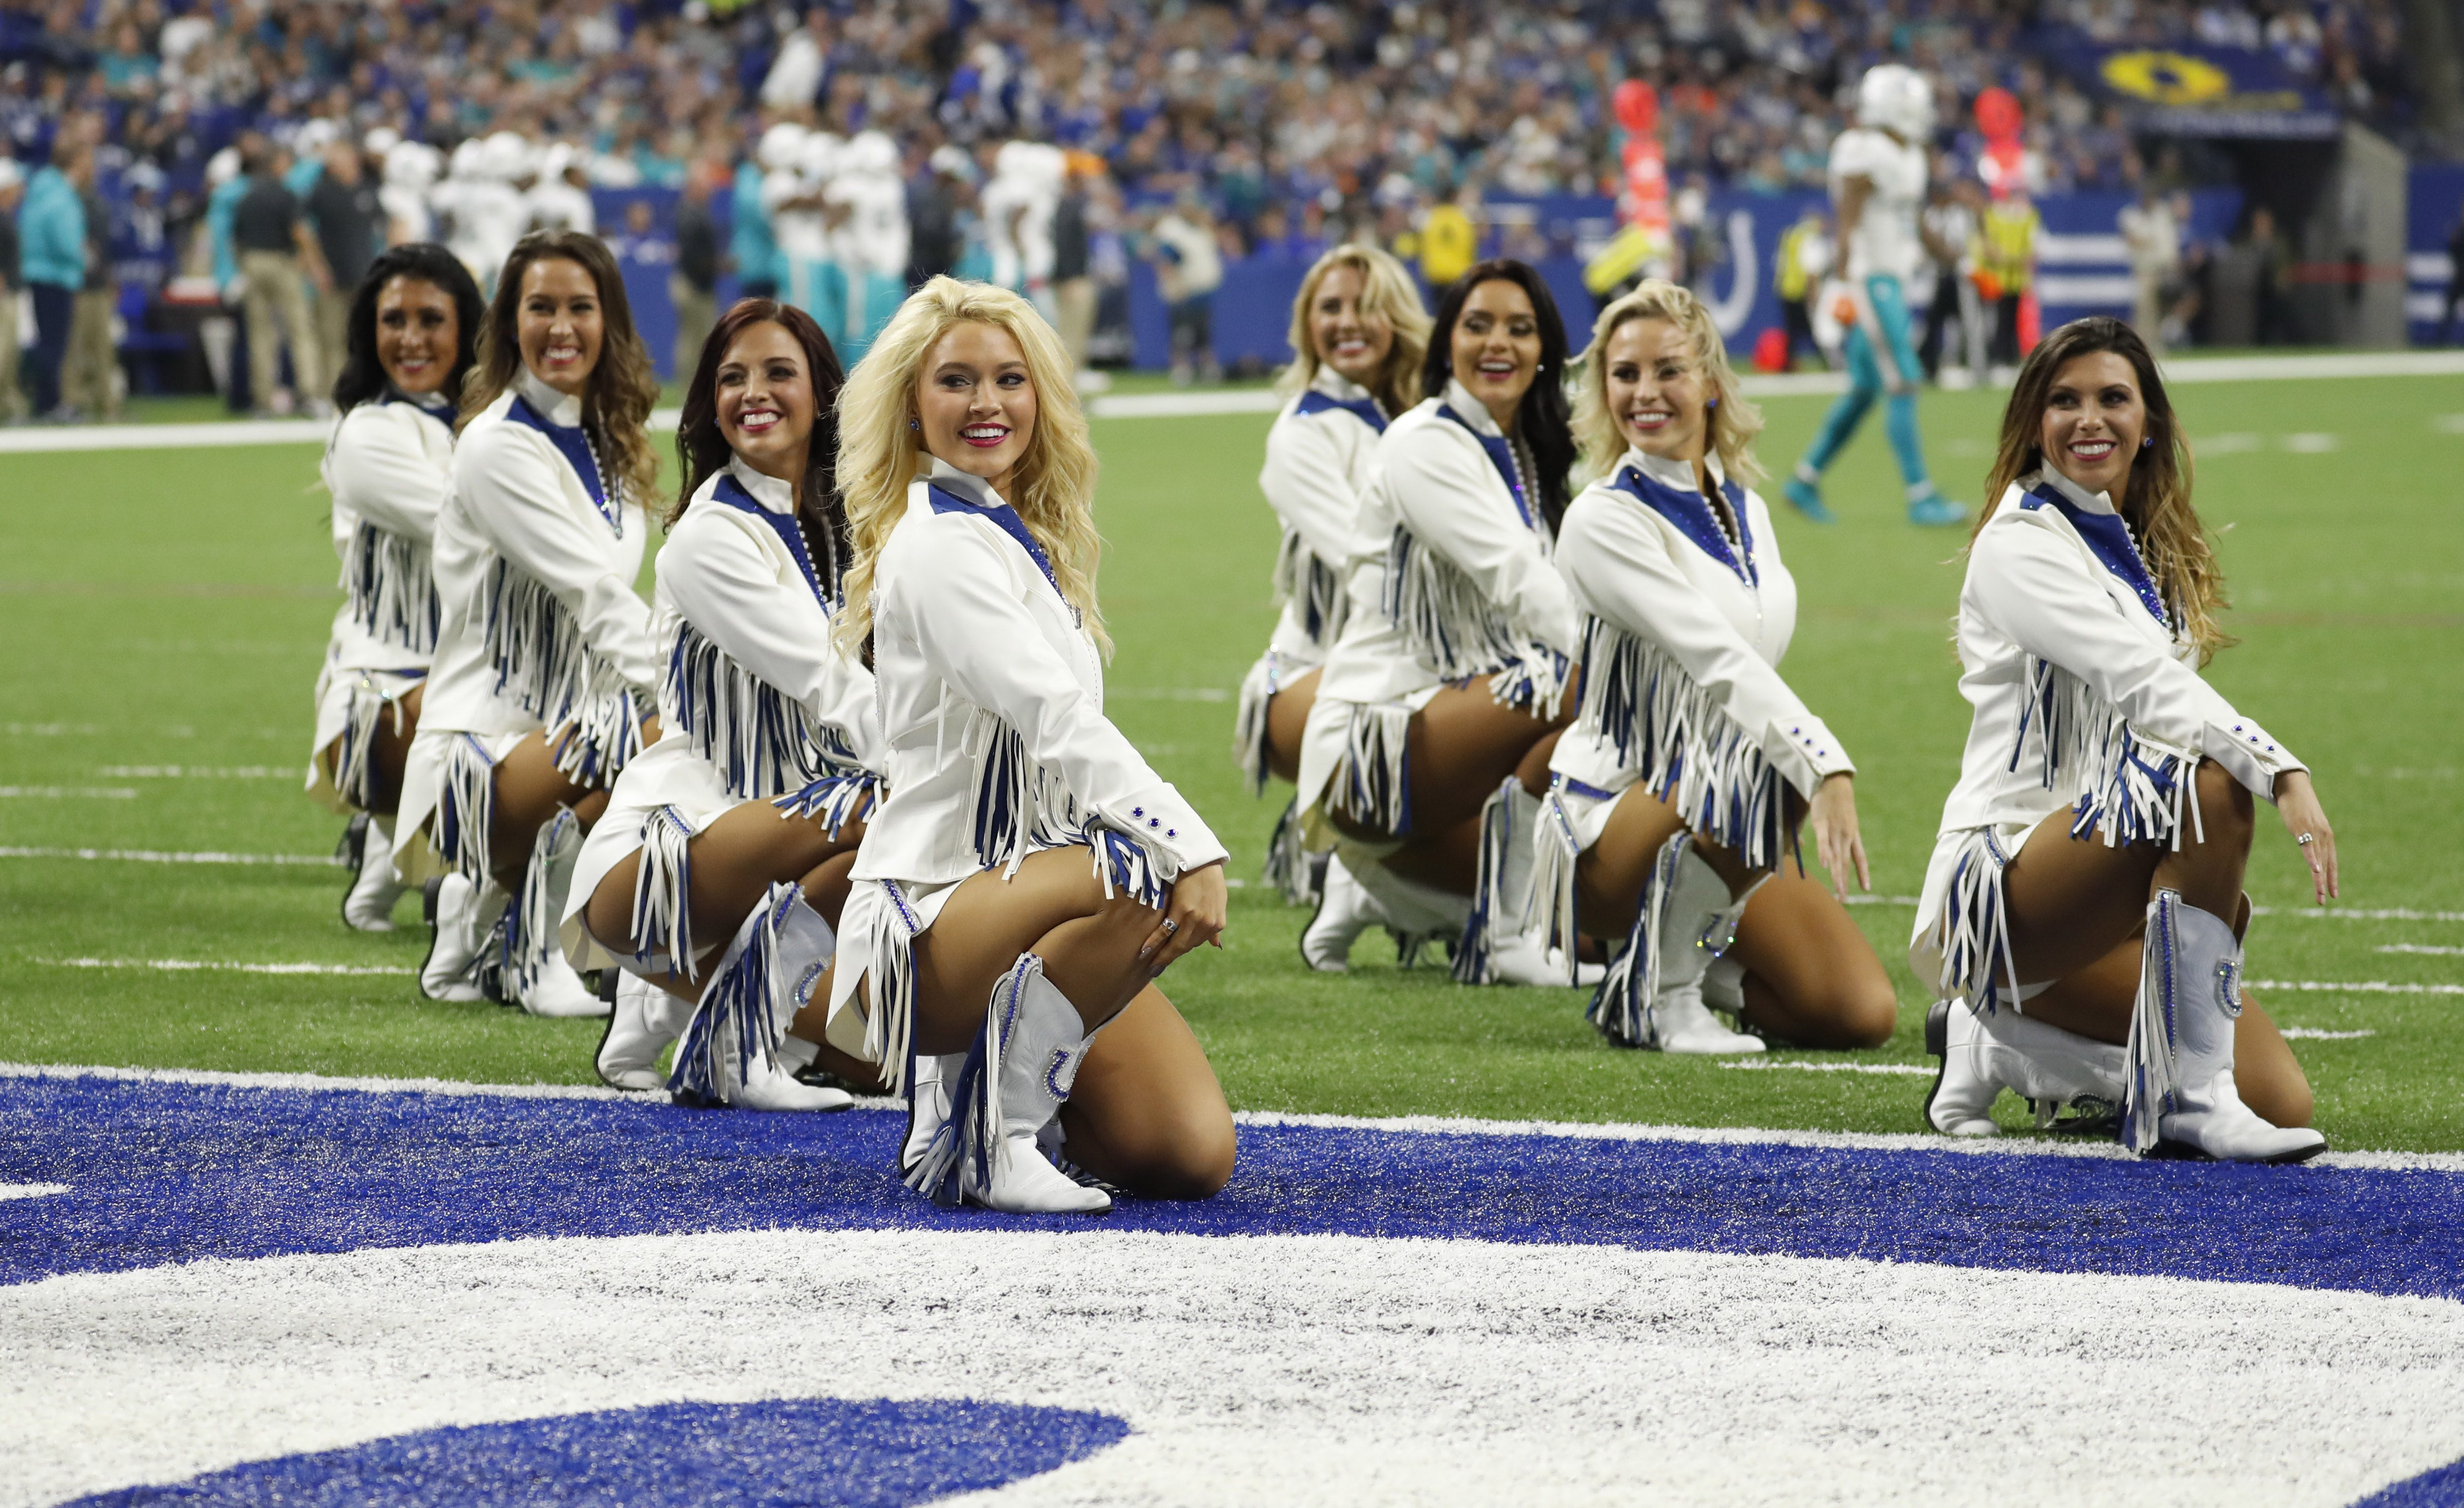 NFL Colts Cheerleader Uniforms Are Conservative, Less ...